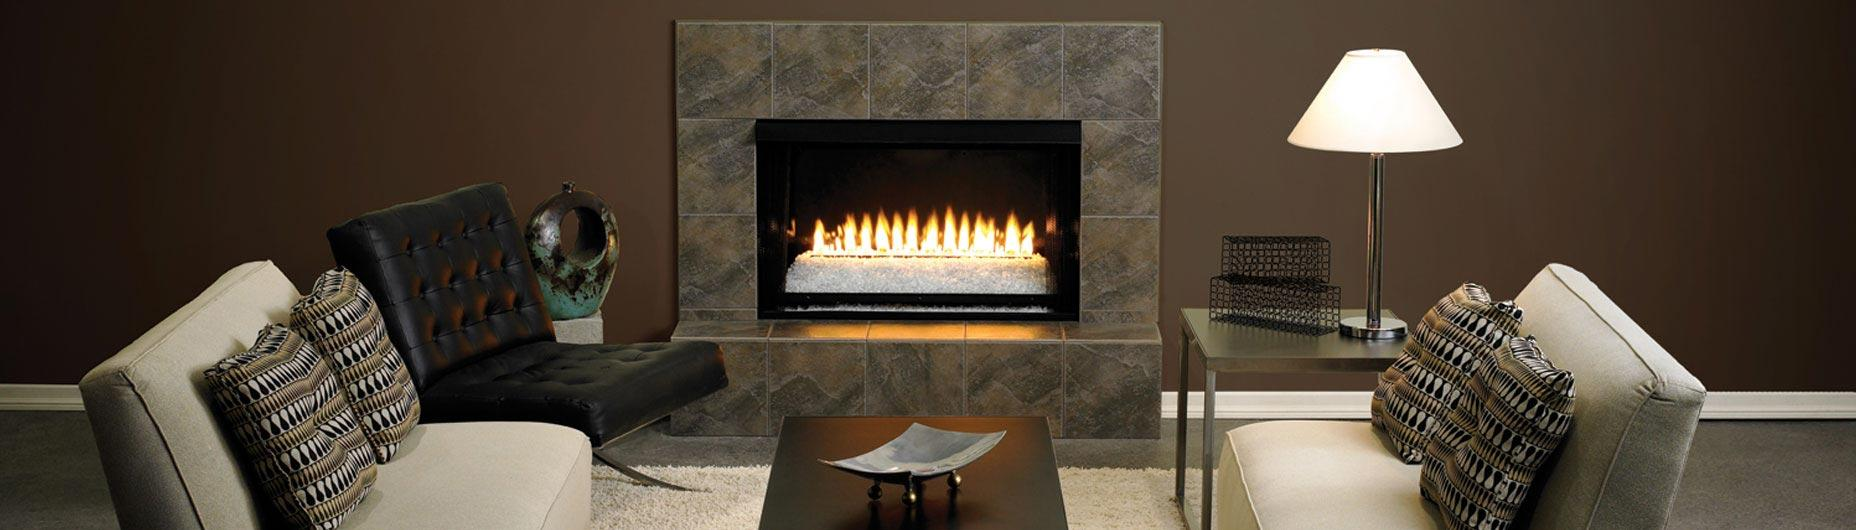 Fireplace Installations  BBQ Grill Store  Monmouth